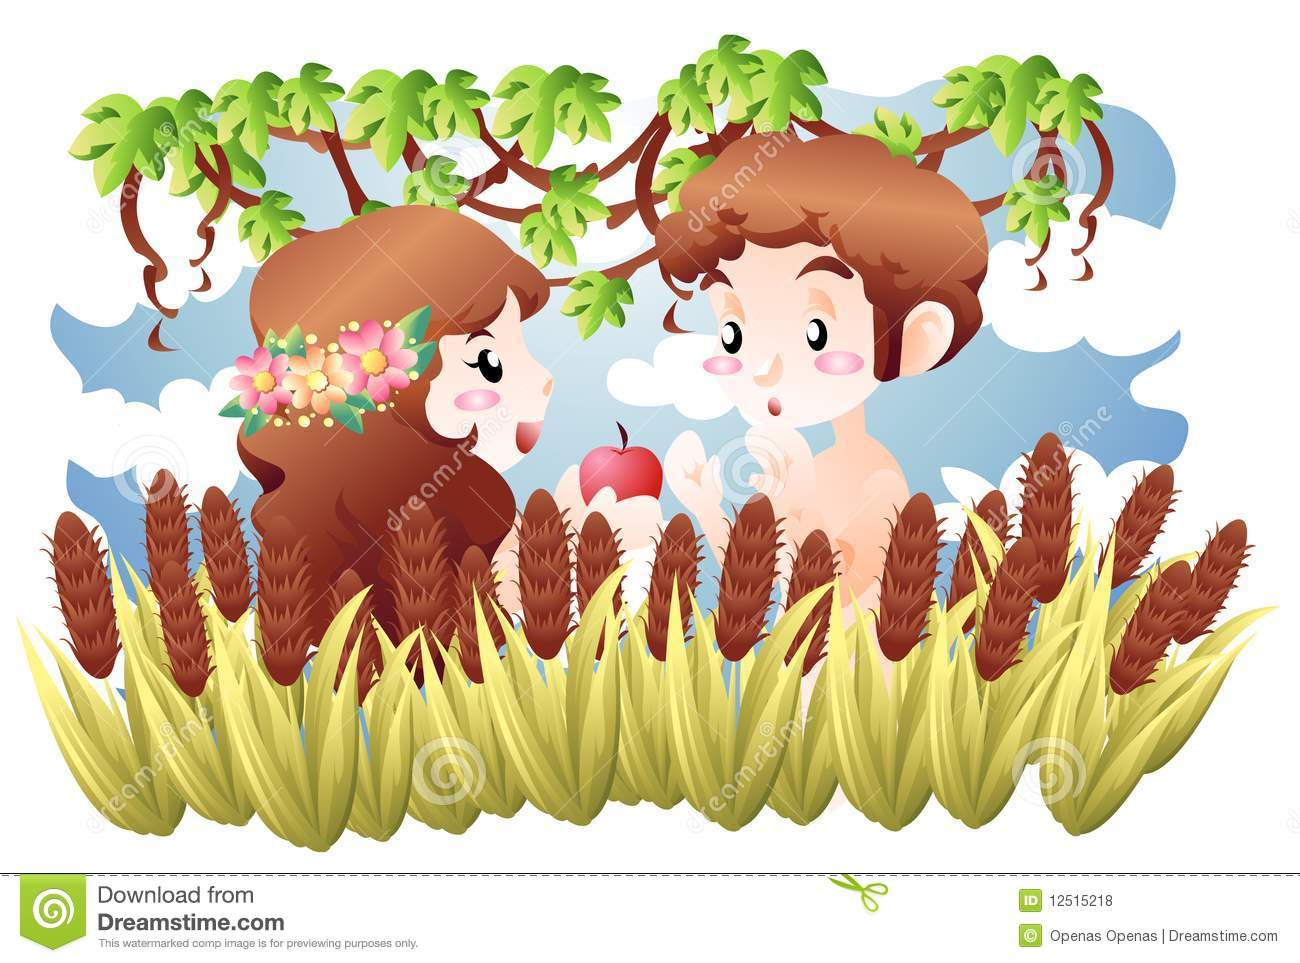 adam and eve royalty free stock photos image 12515218